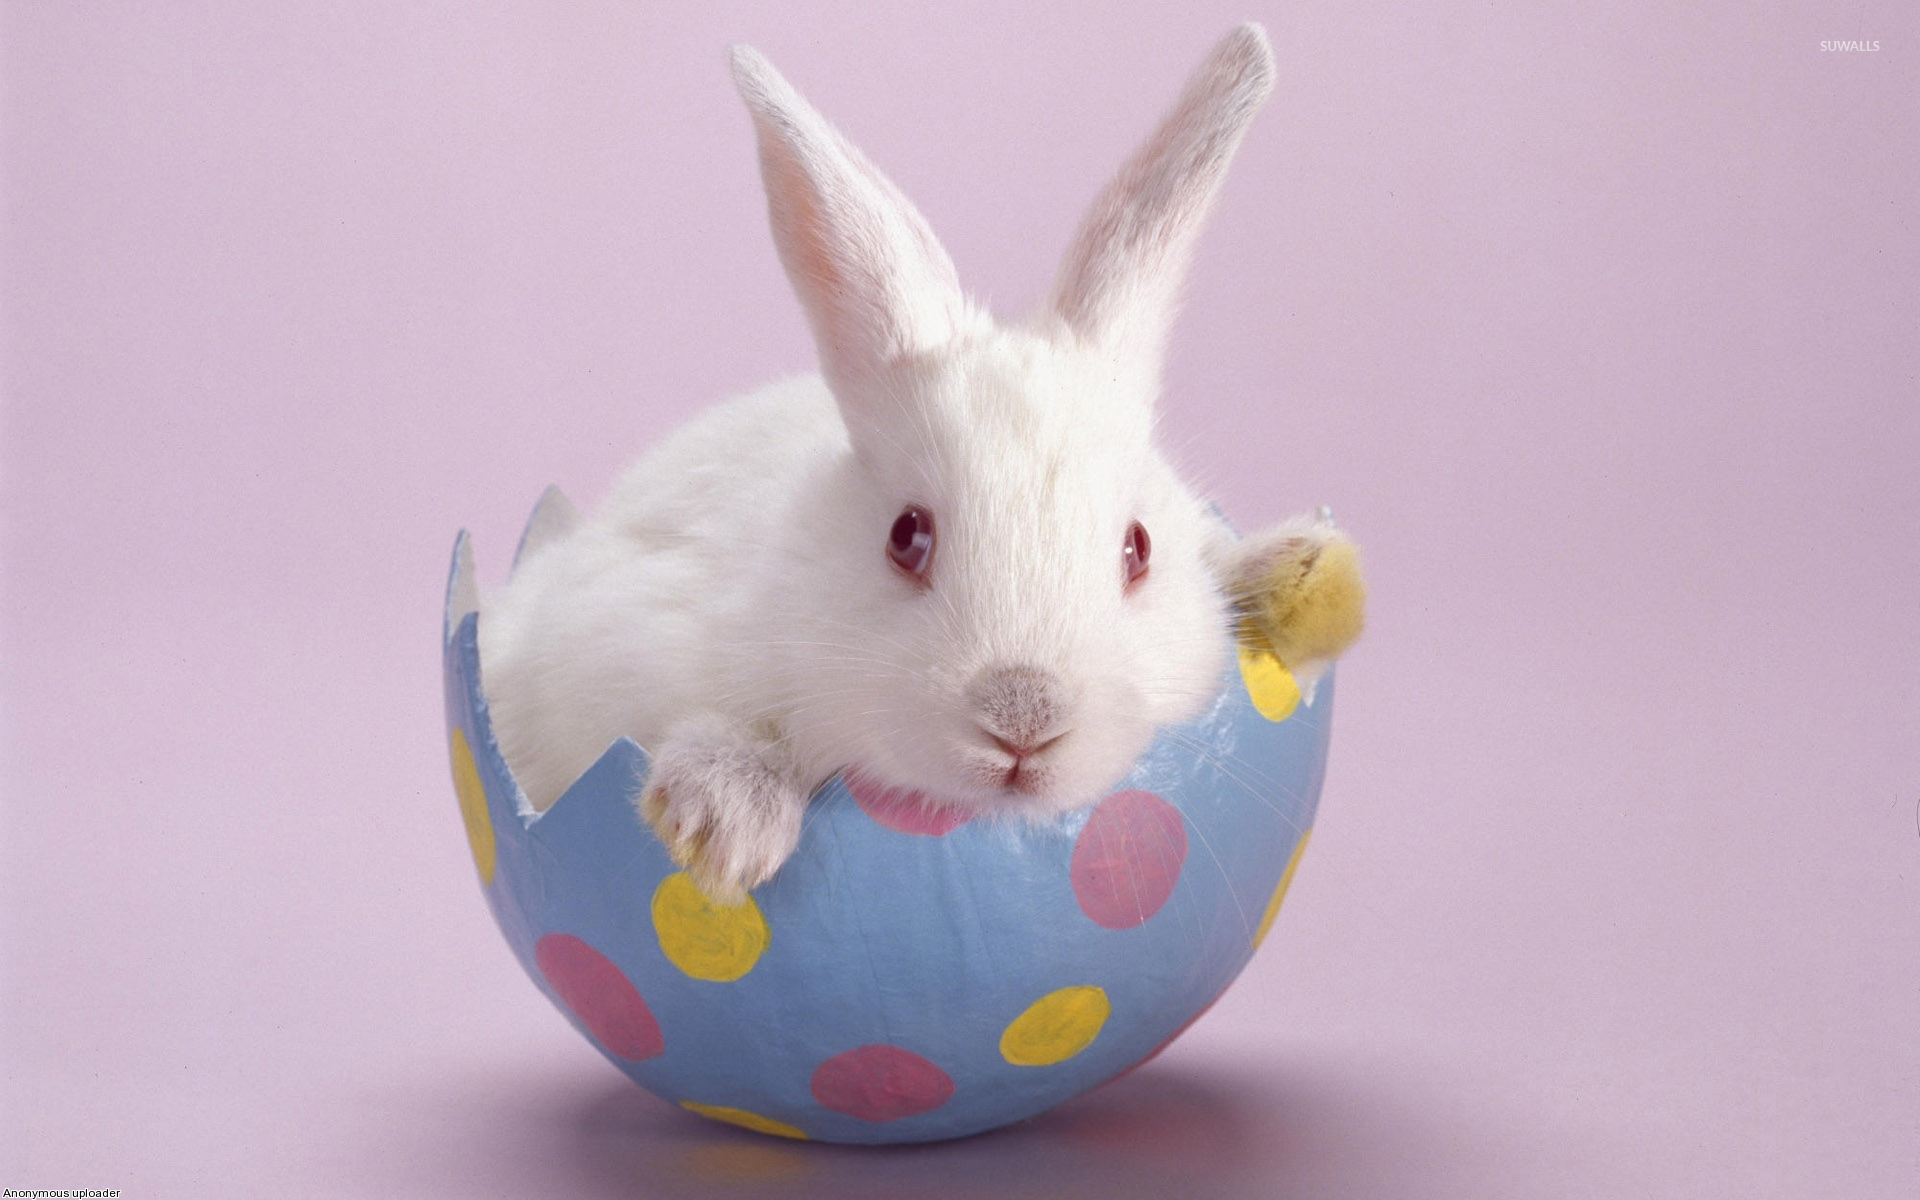 Easter Bunny wallpaper - Holiday wallpapers - #2738 for Real Easter Bunny With Eggs  155fiz